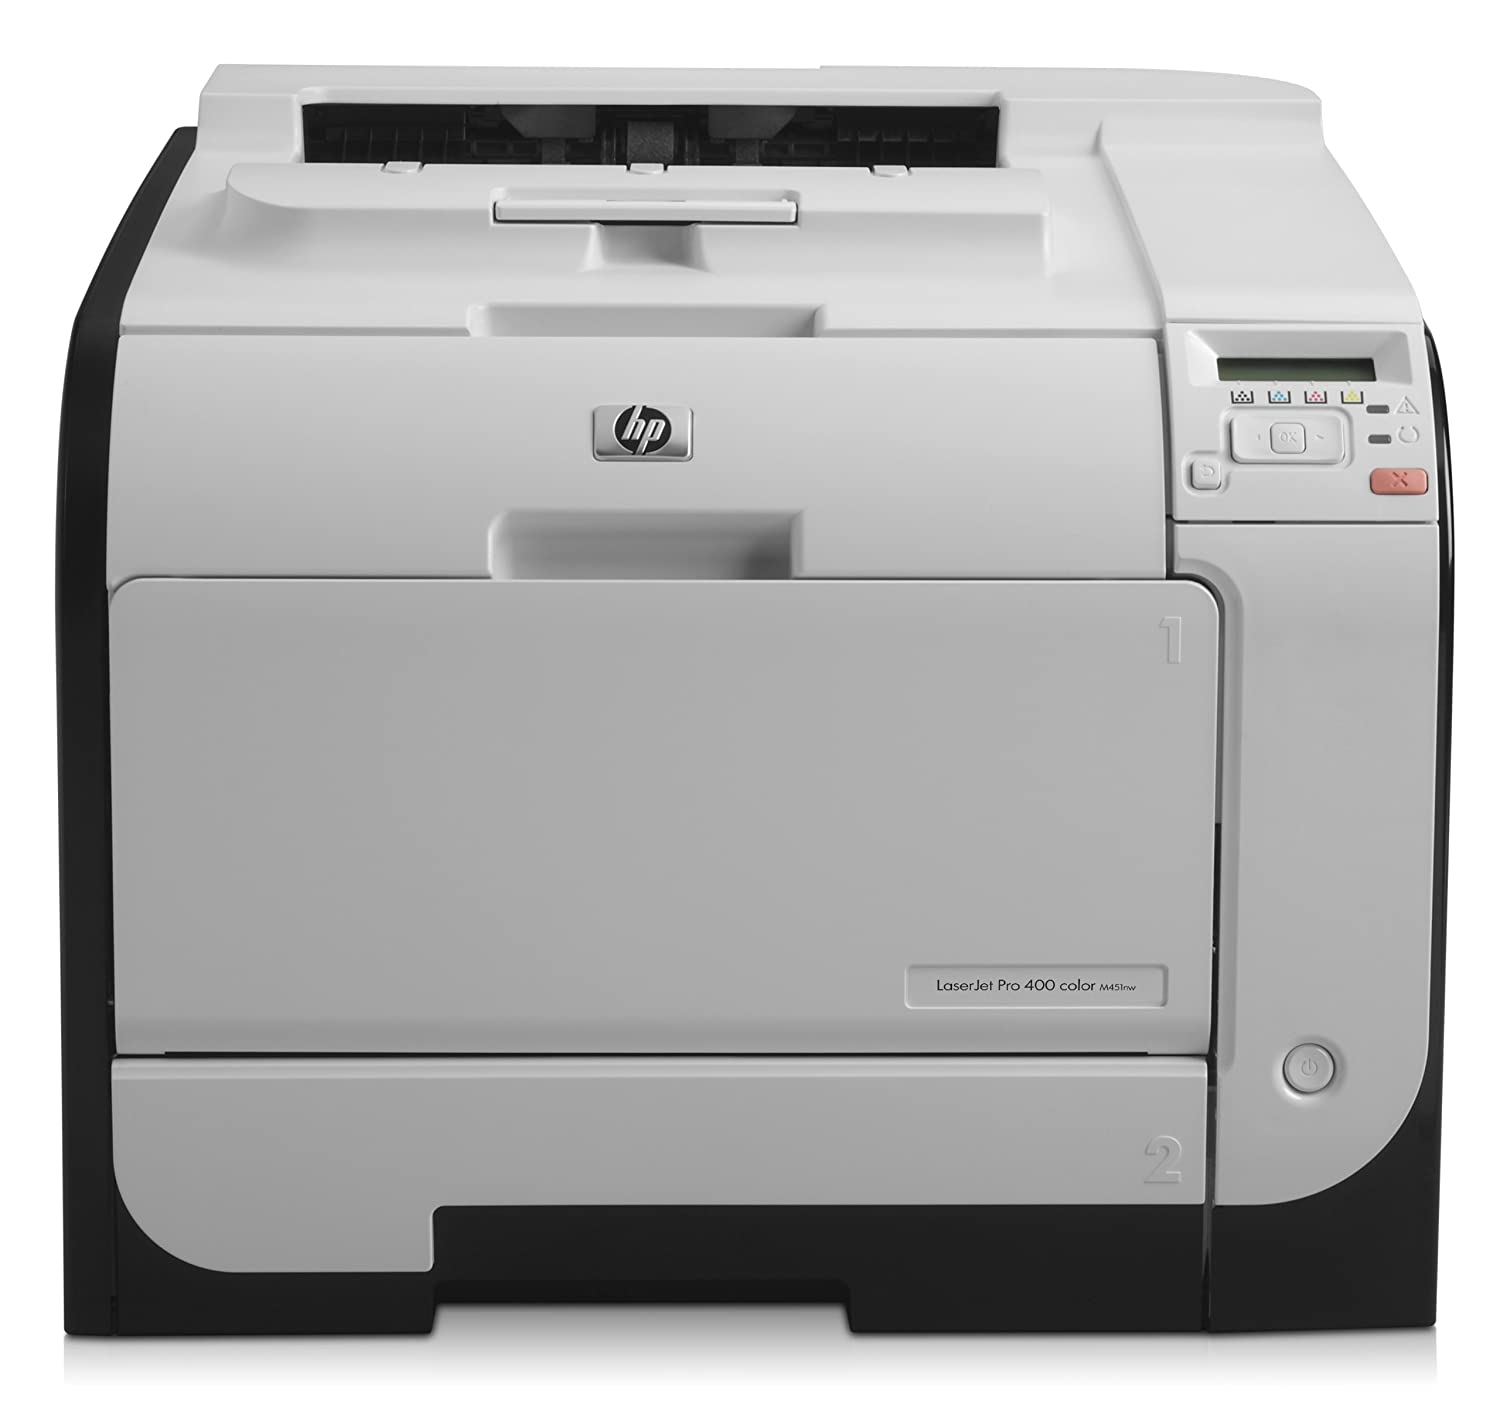 HP Inc. Color LaserJet Pro 400 M451nw **New Retail**, CE956A#B19 (**New  Retail** Nordic Version): Amazon.co.uk: Computers & Accessories